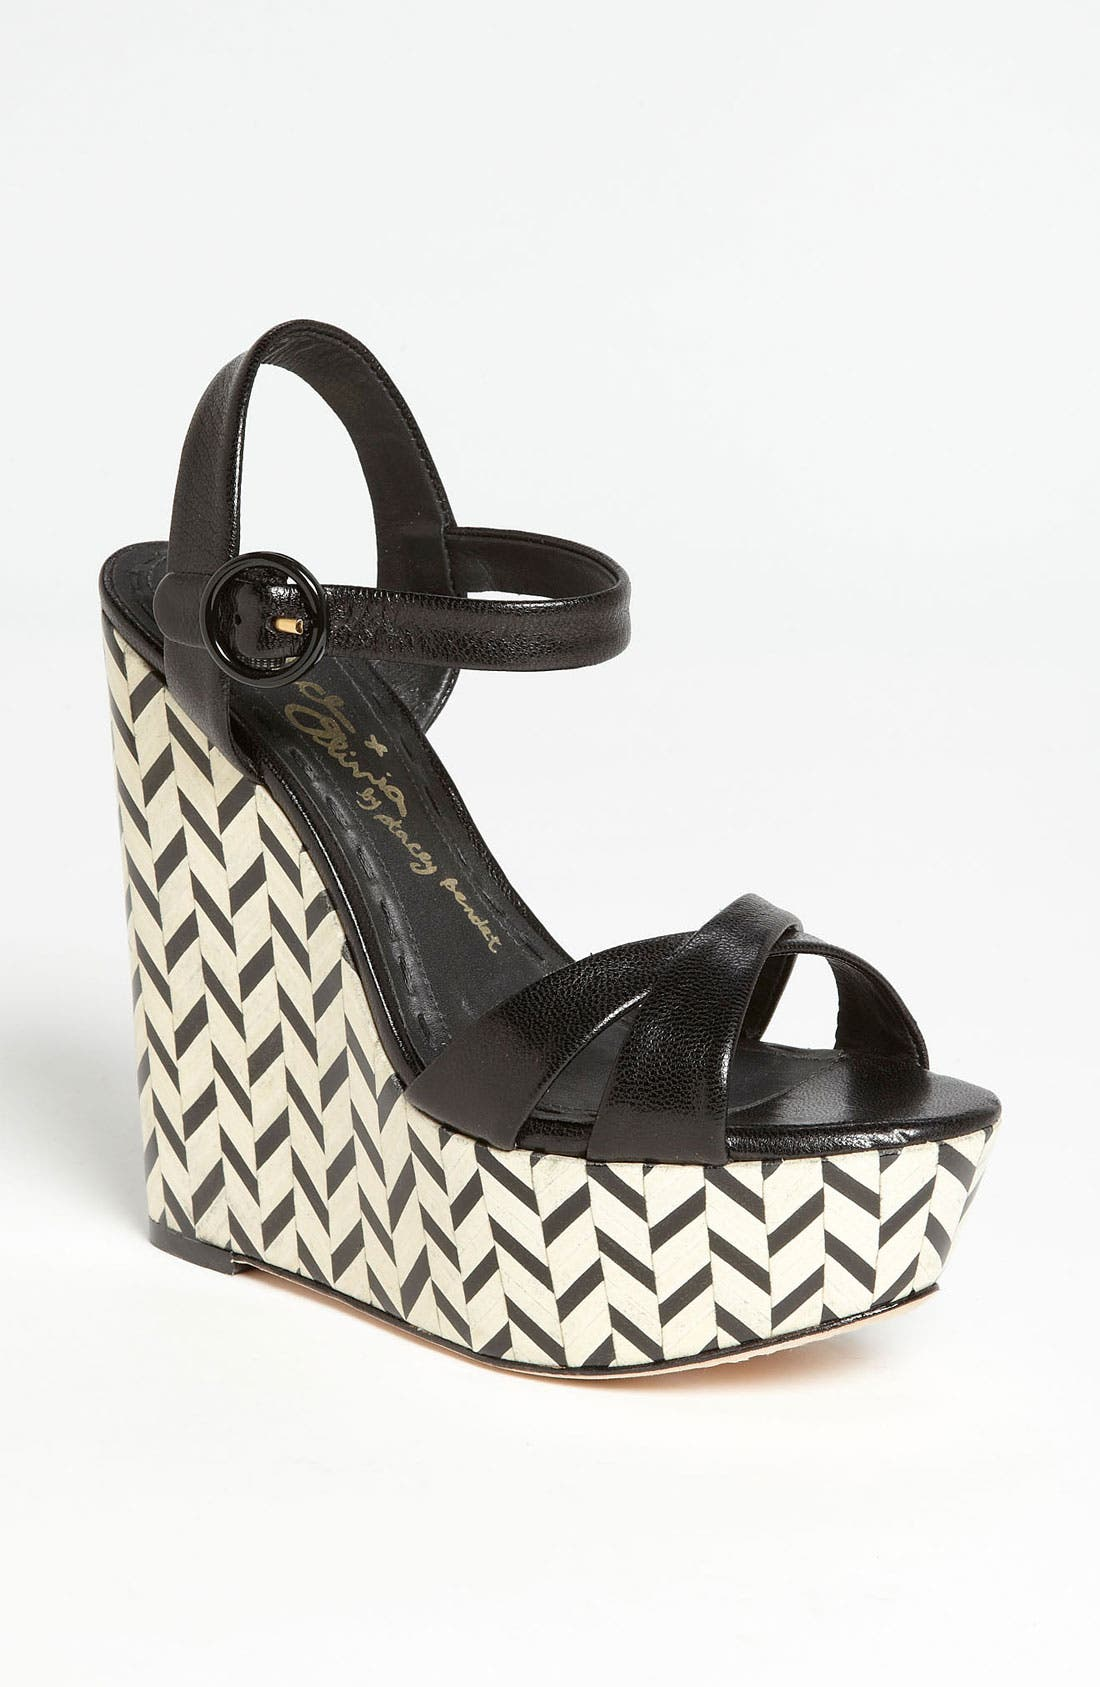 Alternate Image 1 Selected - Alice + Olivia 'Sorell' Wedge